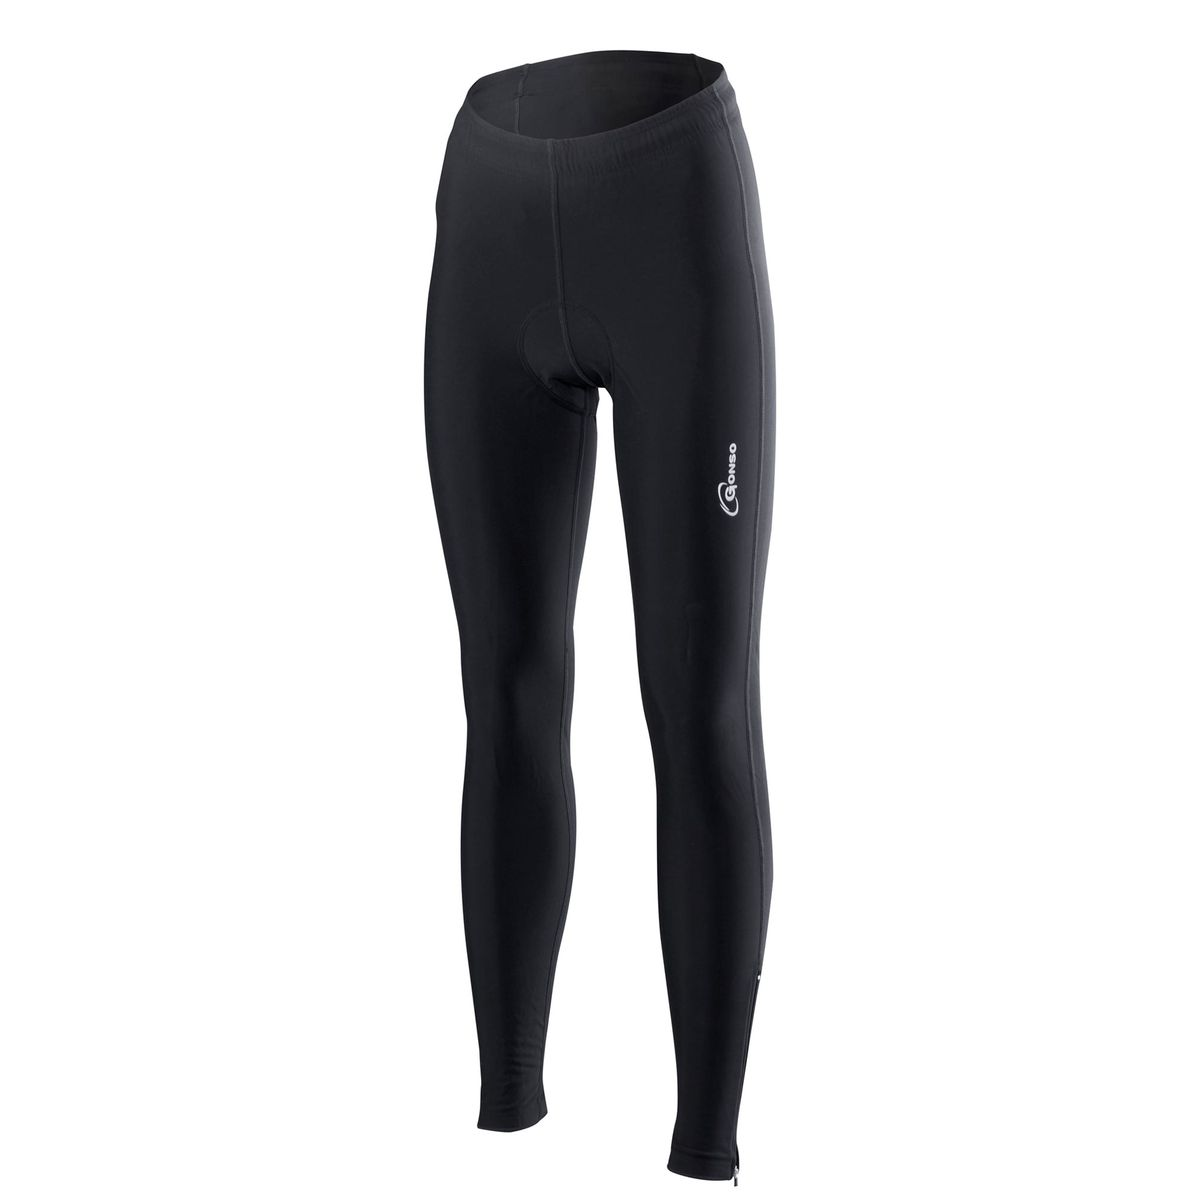 DENVER V2 Damen Thermo Radhose lang